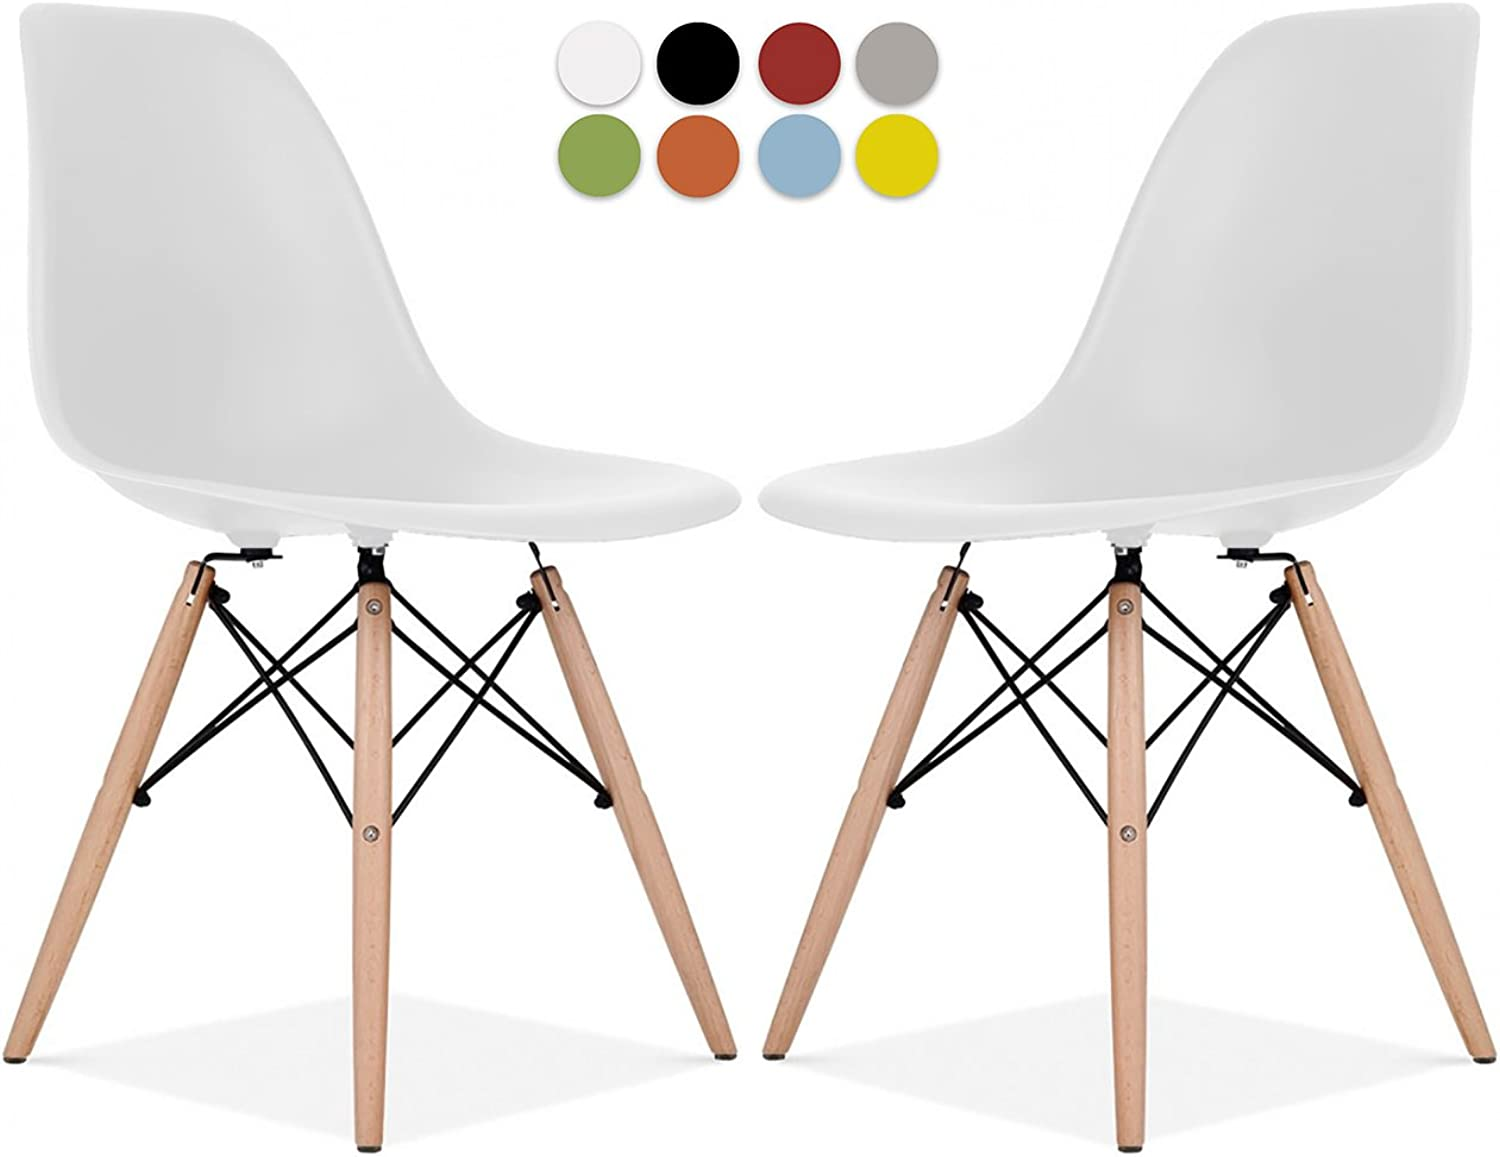 Eames Style Chair by La Valley - Set of 2 - Mid Century Modern Eames Molded Shell Chair with Dowel Wood Eiffel Legs - for Dining Room, Kitchen, Bedroom, Lounge - Easy-Assemble & Clean - White